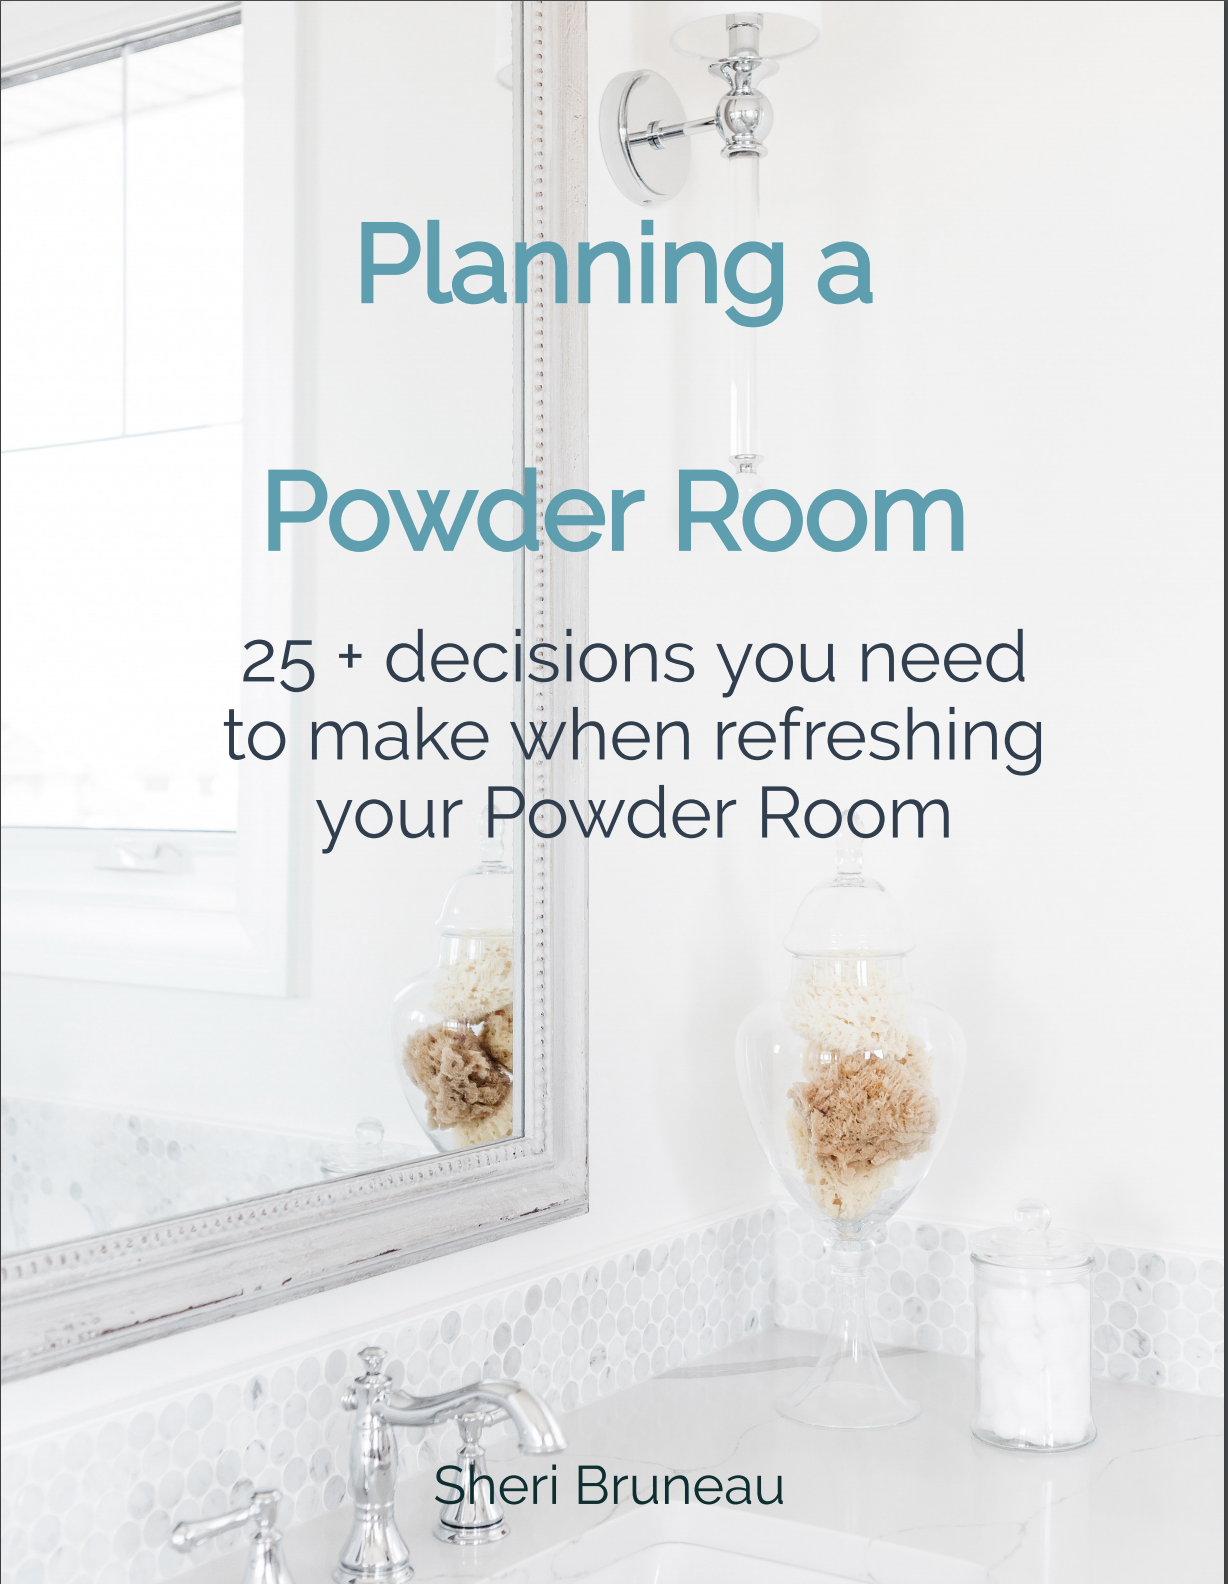 Powder Room Decisions.png